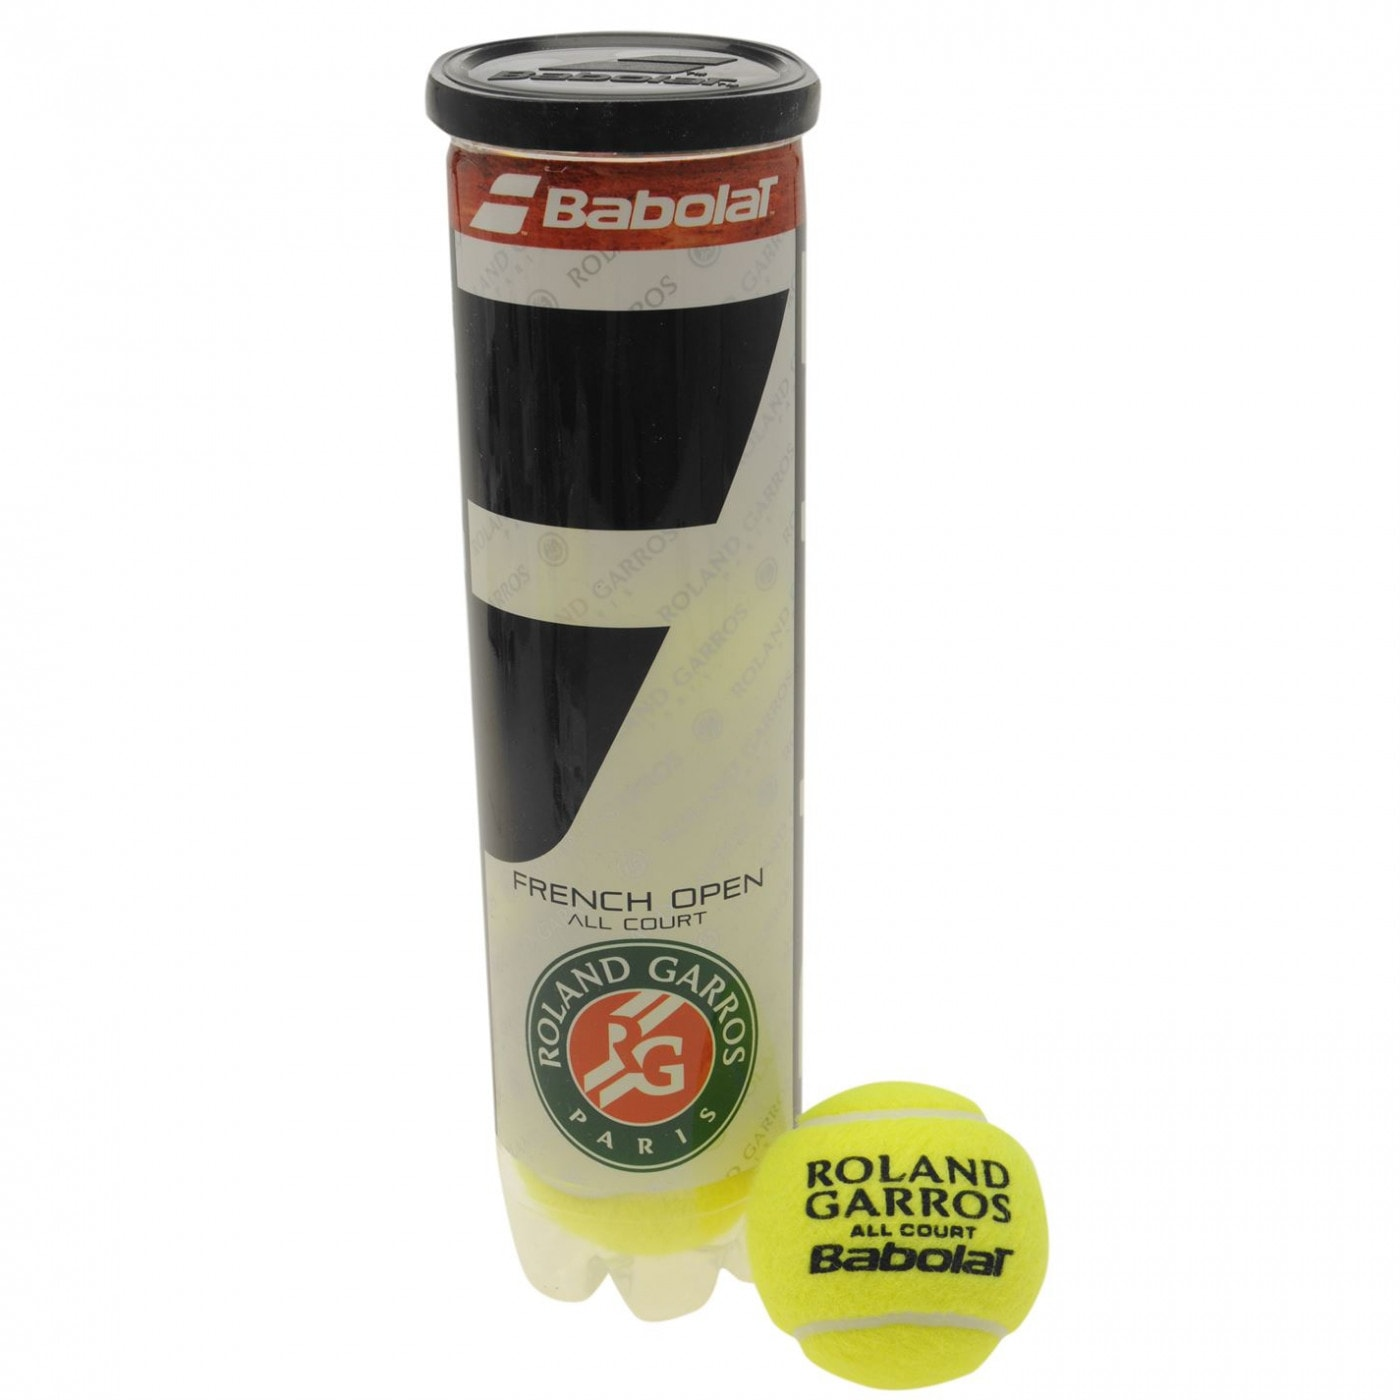 Babolat Roland Garros All Court Tennis Balls